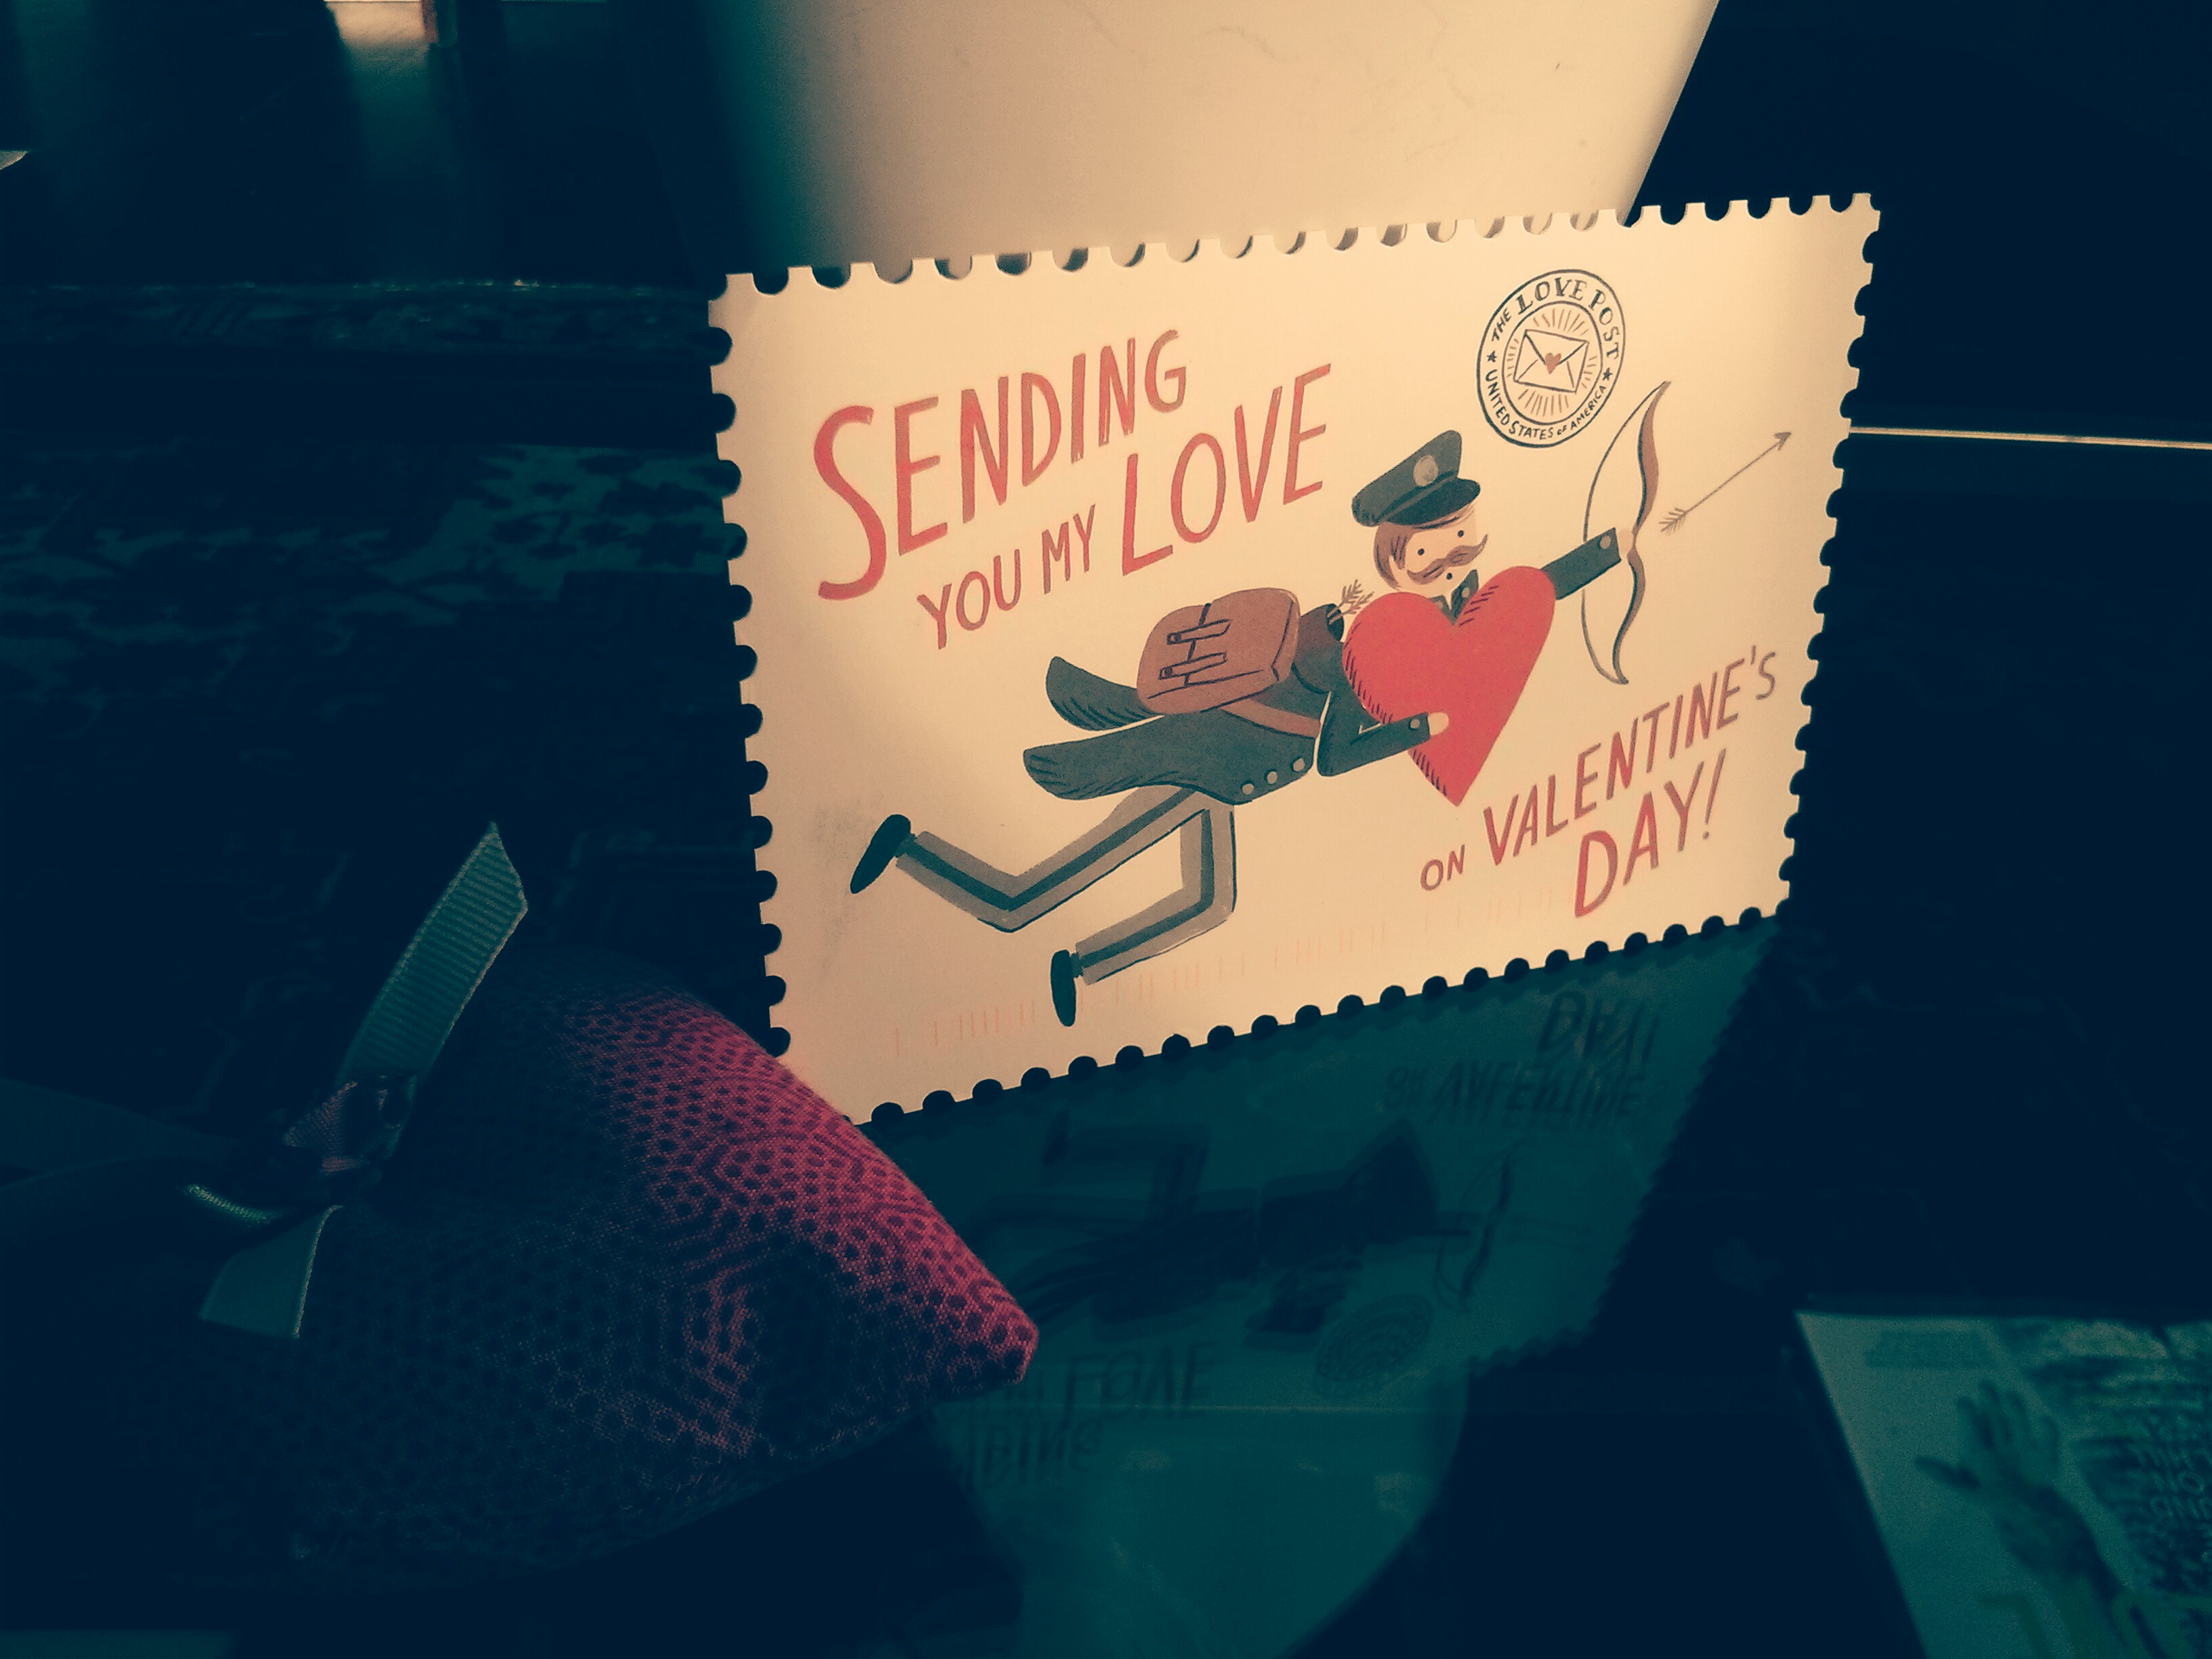 A Valentine's Day postcard from my friend